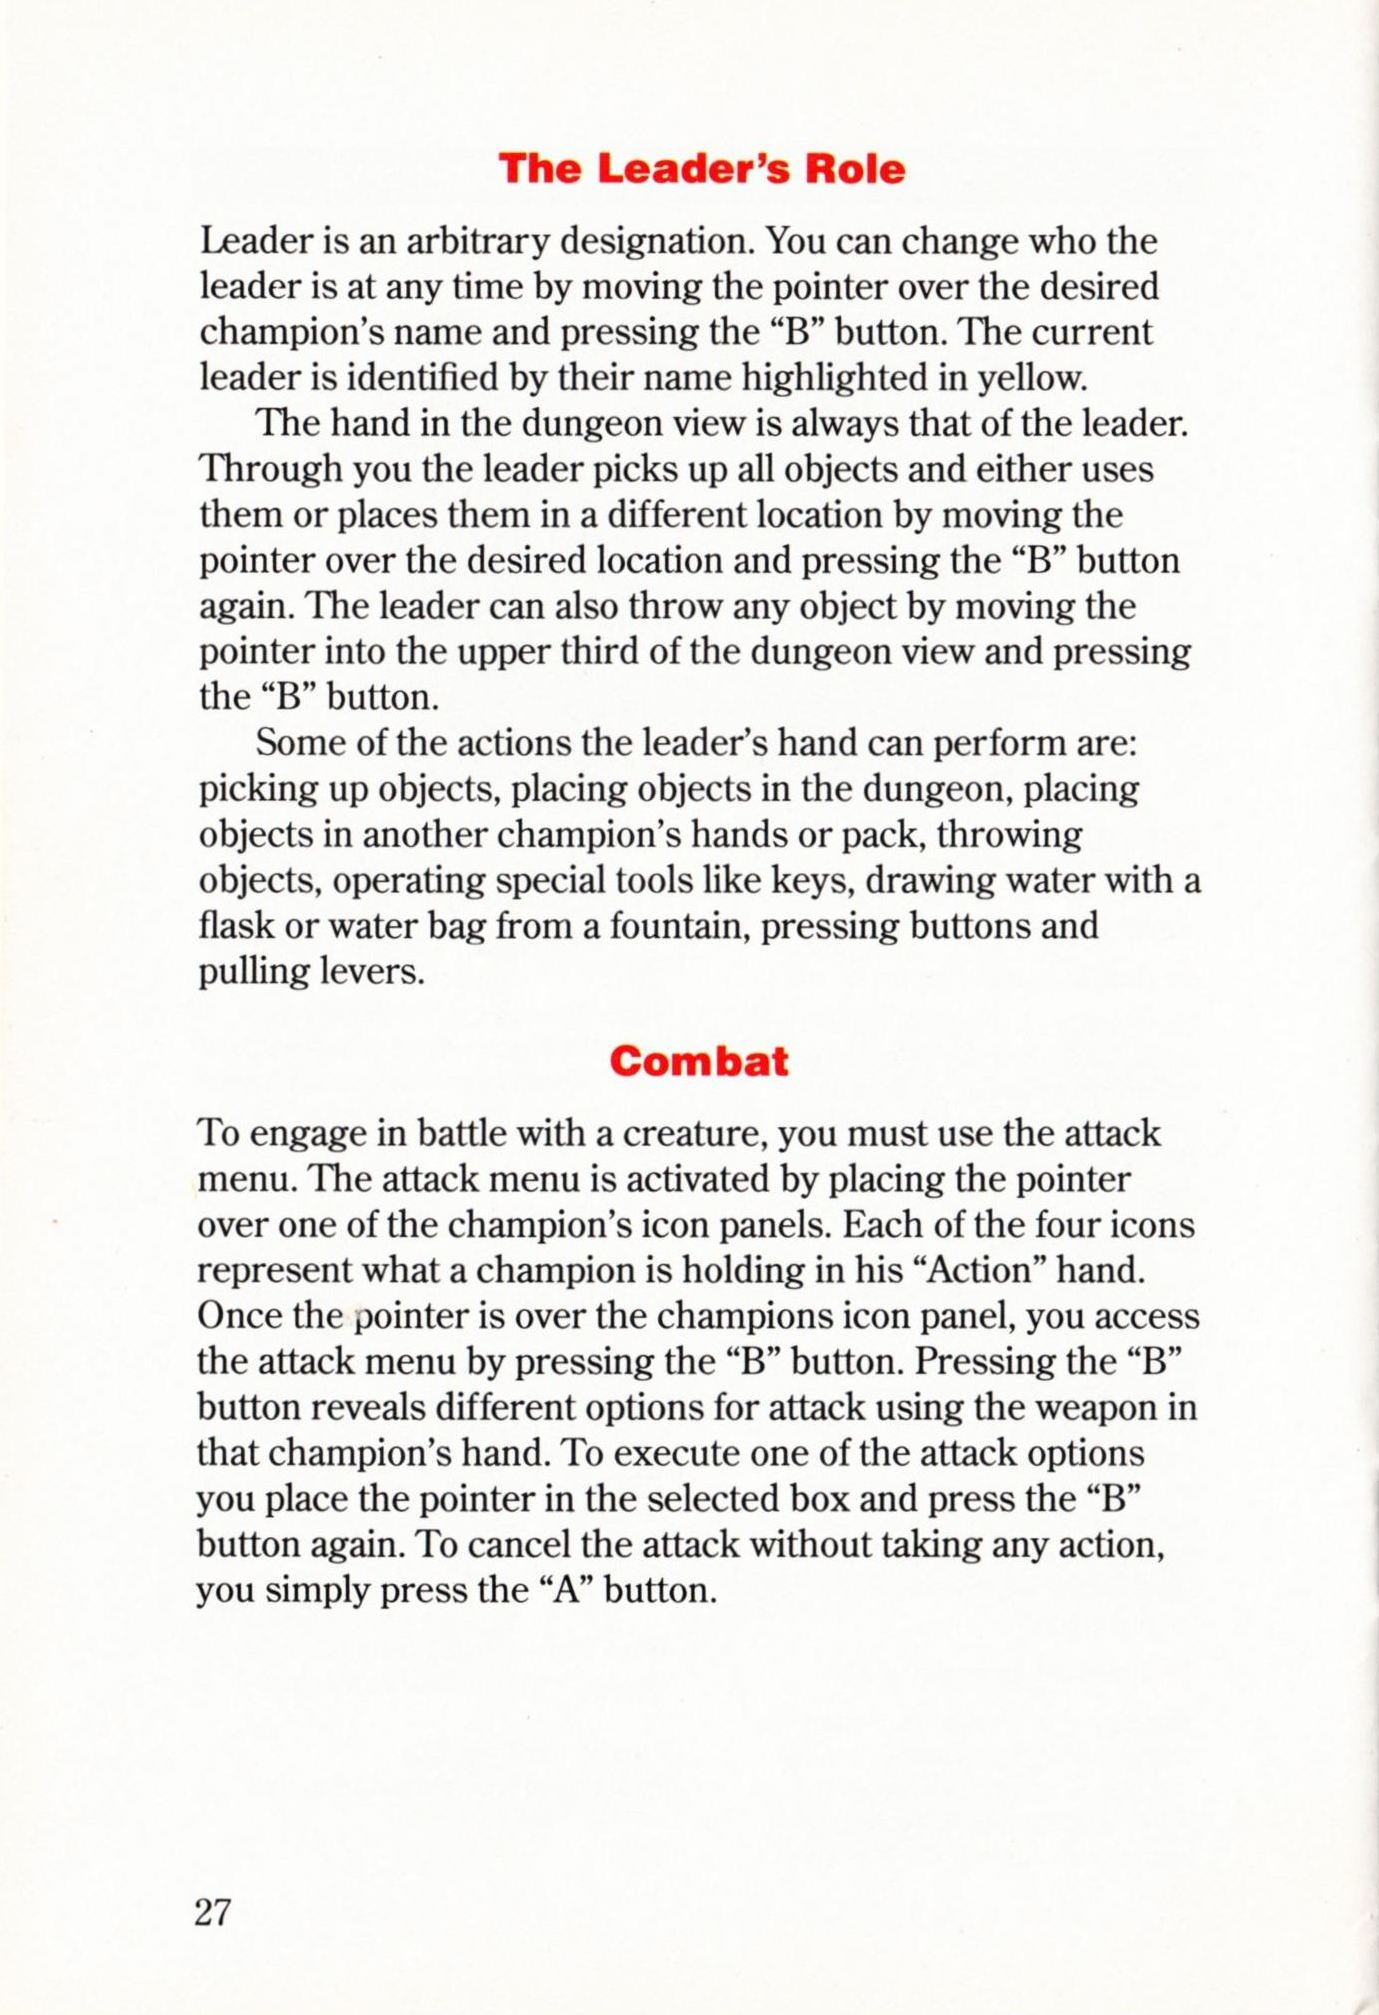 Game - Dungeon Master - US - Super NES - Manual - Page 030 - Scan